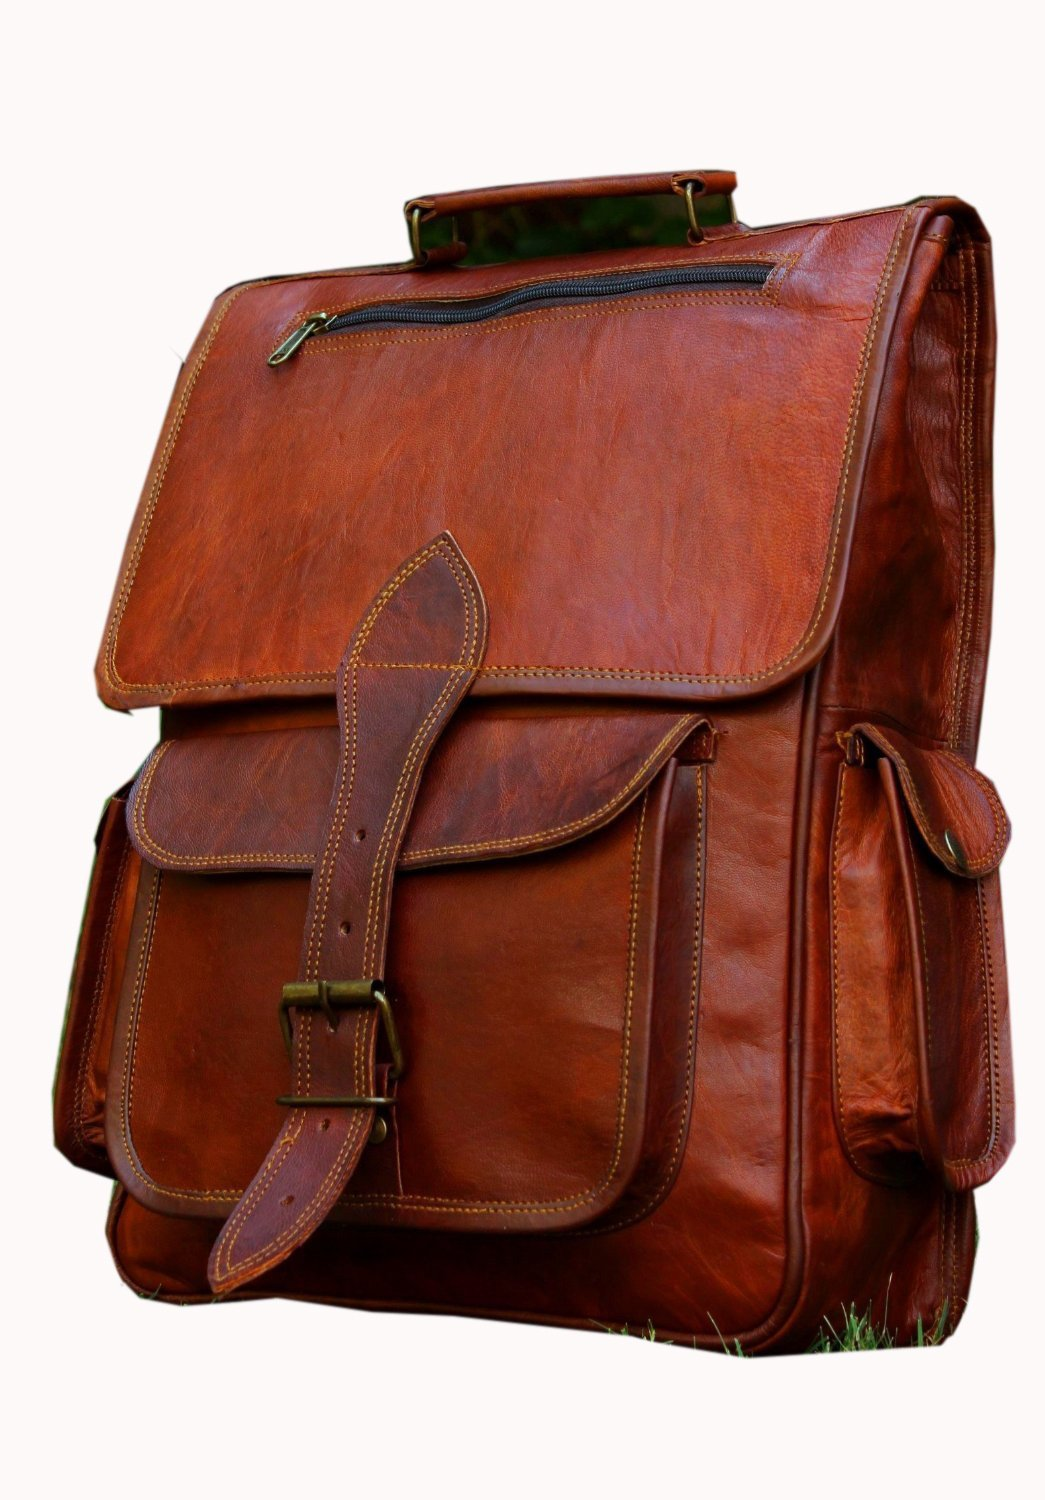 HLC Vintage Bag Leather Handmade Vintage Style Backpack/College Bag/ Picnic Bag